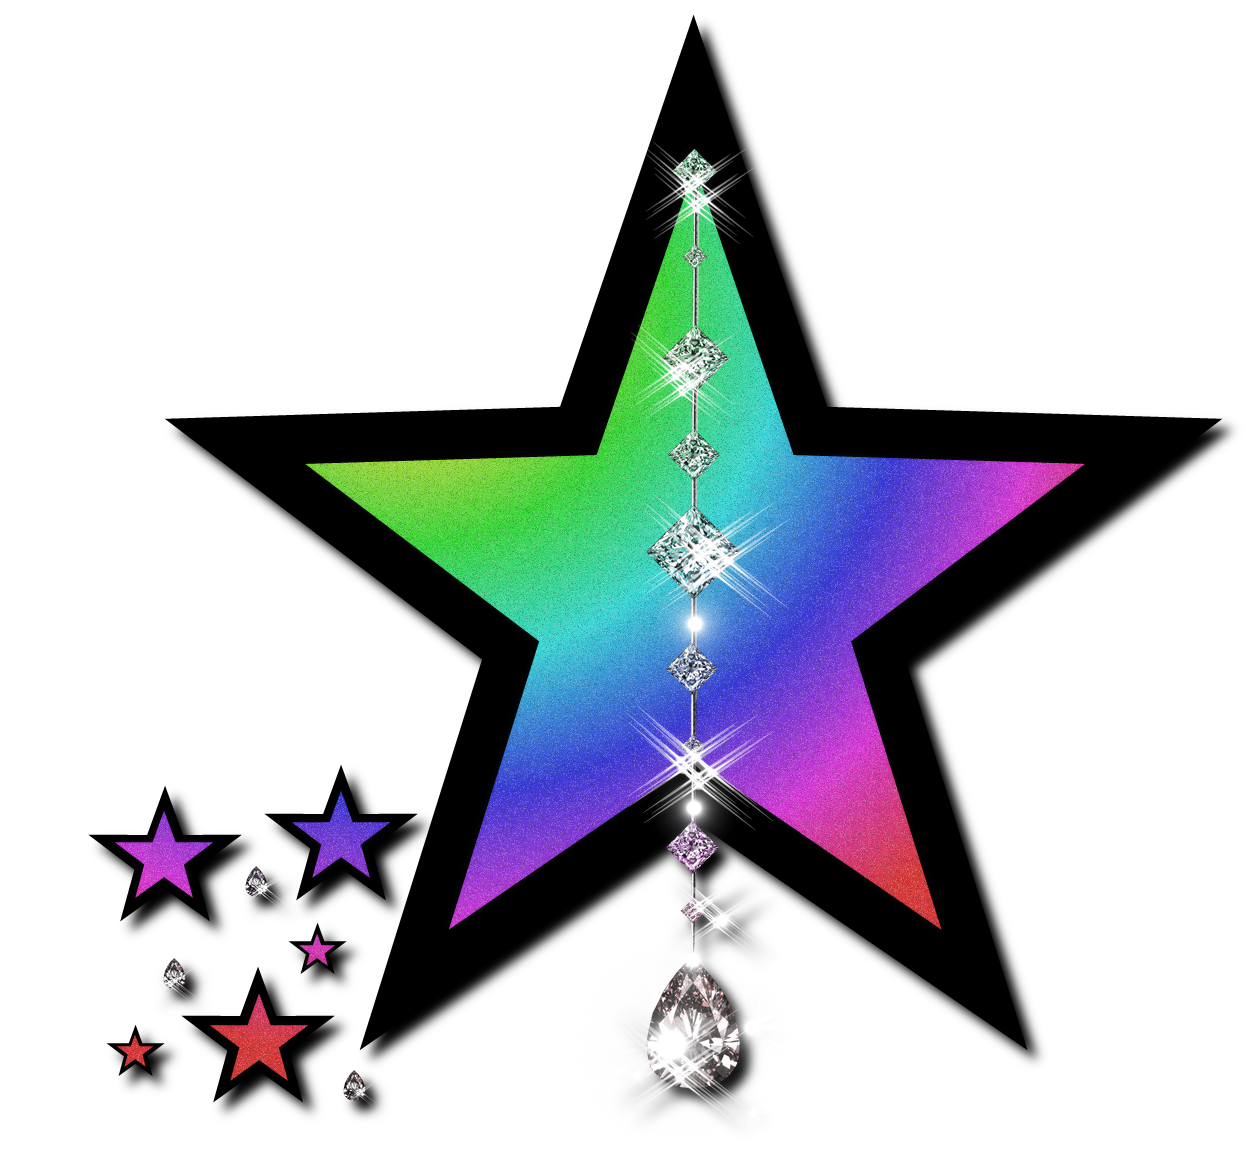 Star sparkle clipart image freeuse download Silver Glitter Star Clipart | Clipart Panda - Free Clipart Images image freeuse download